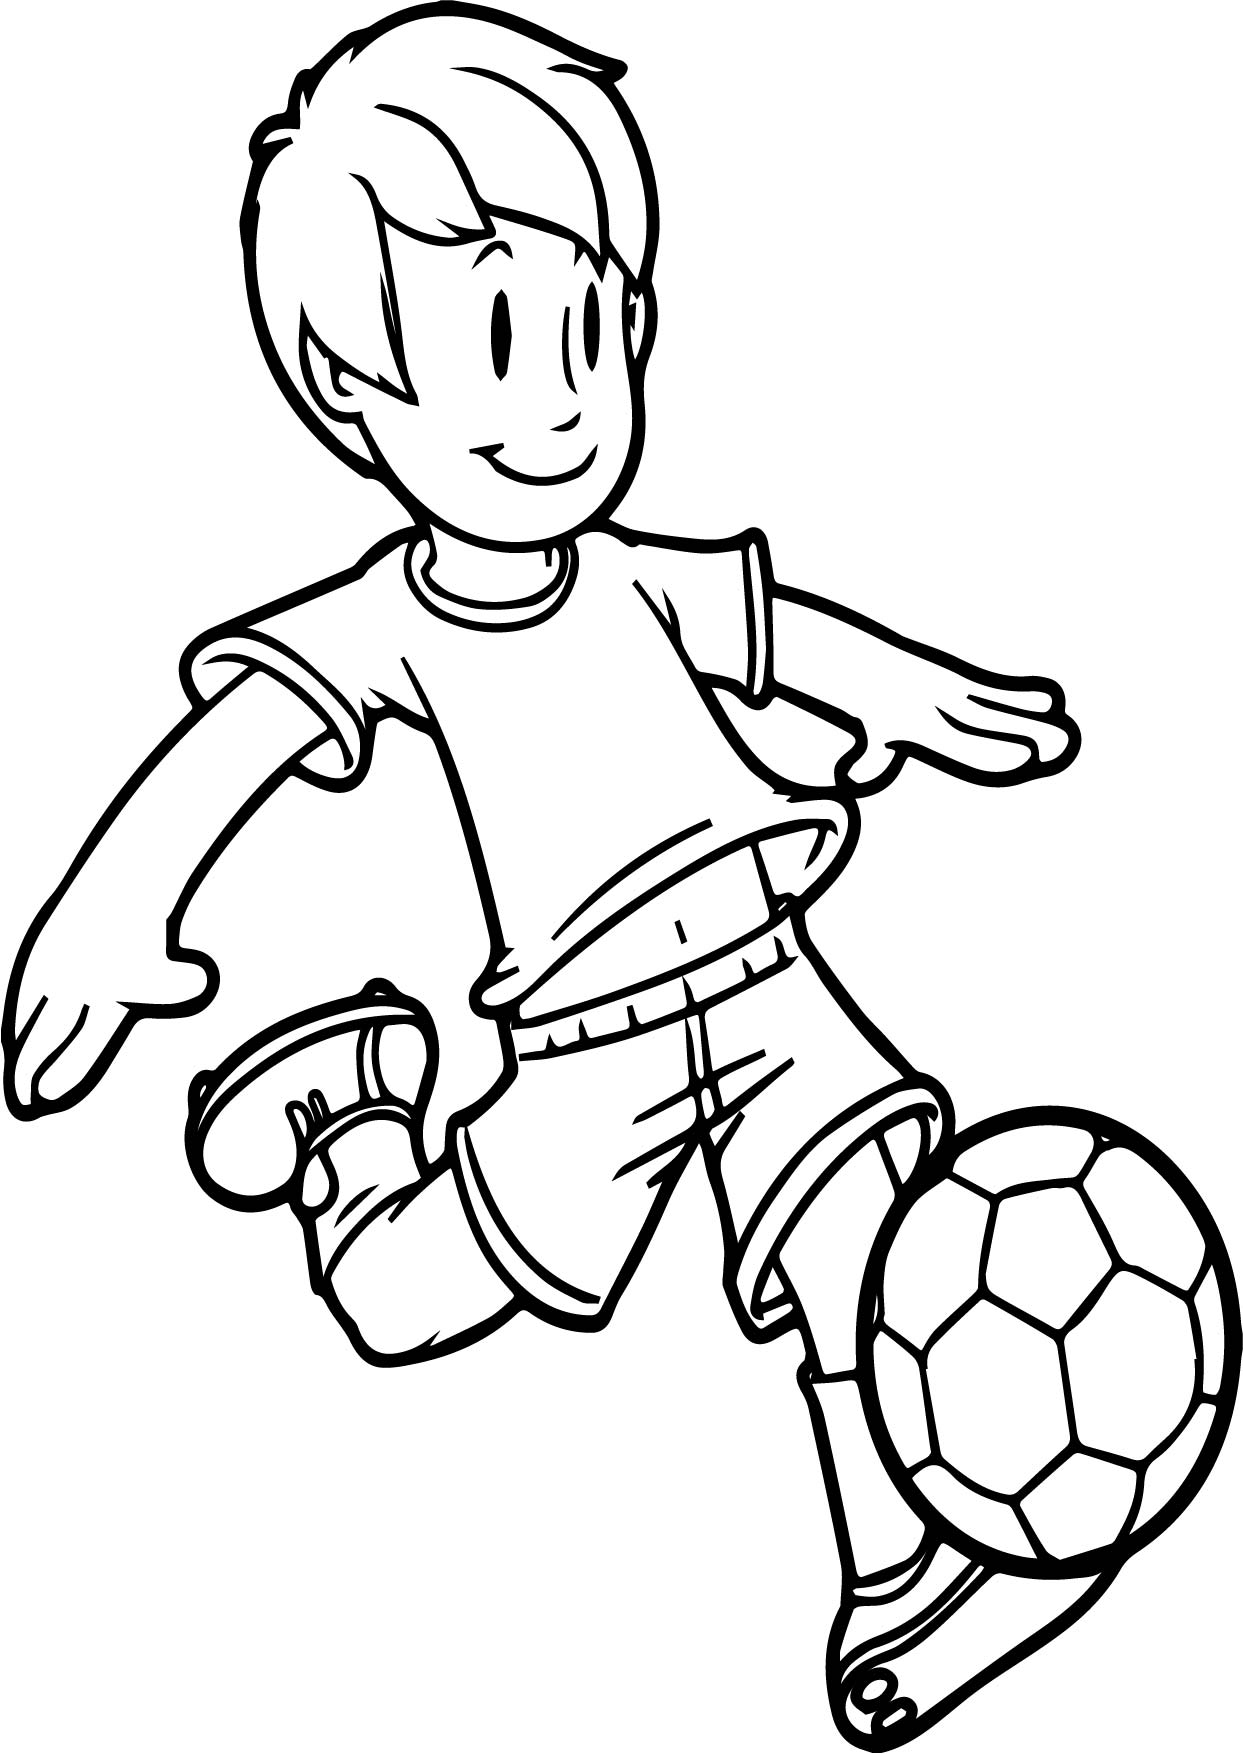 easy coloring pages for boys - photo#13